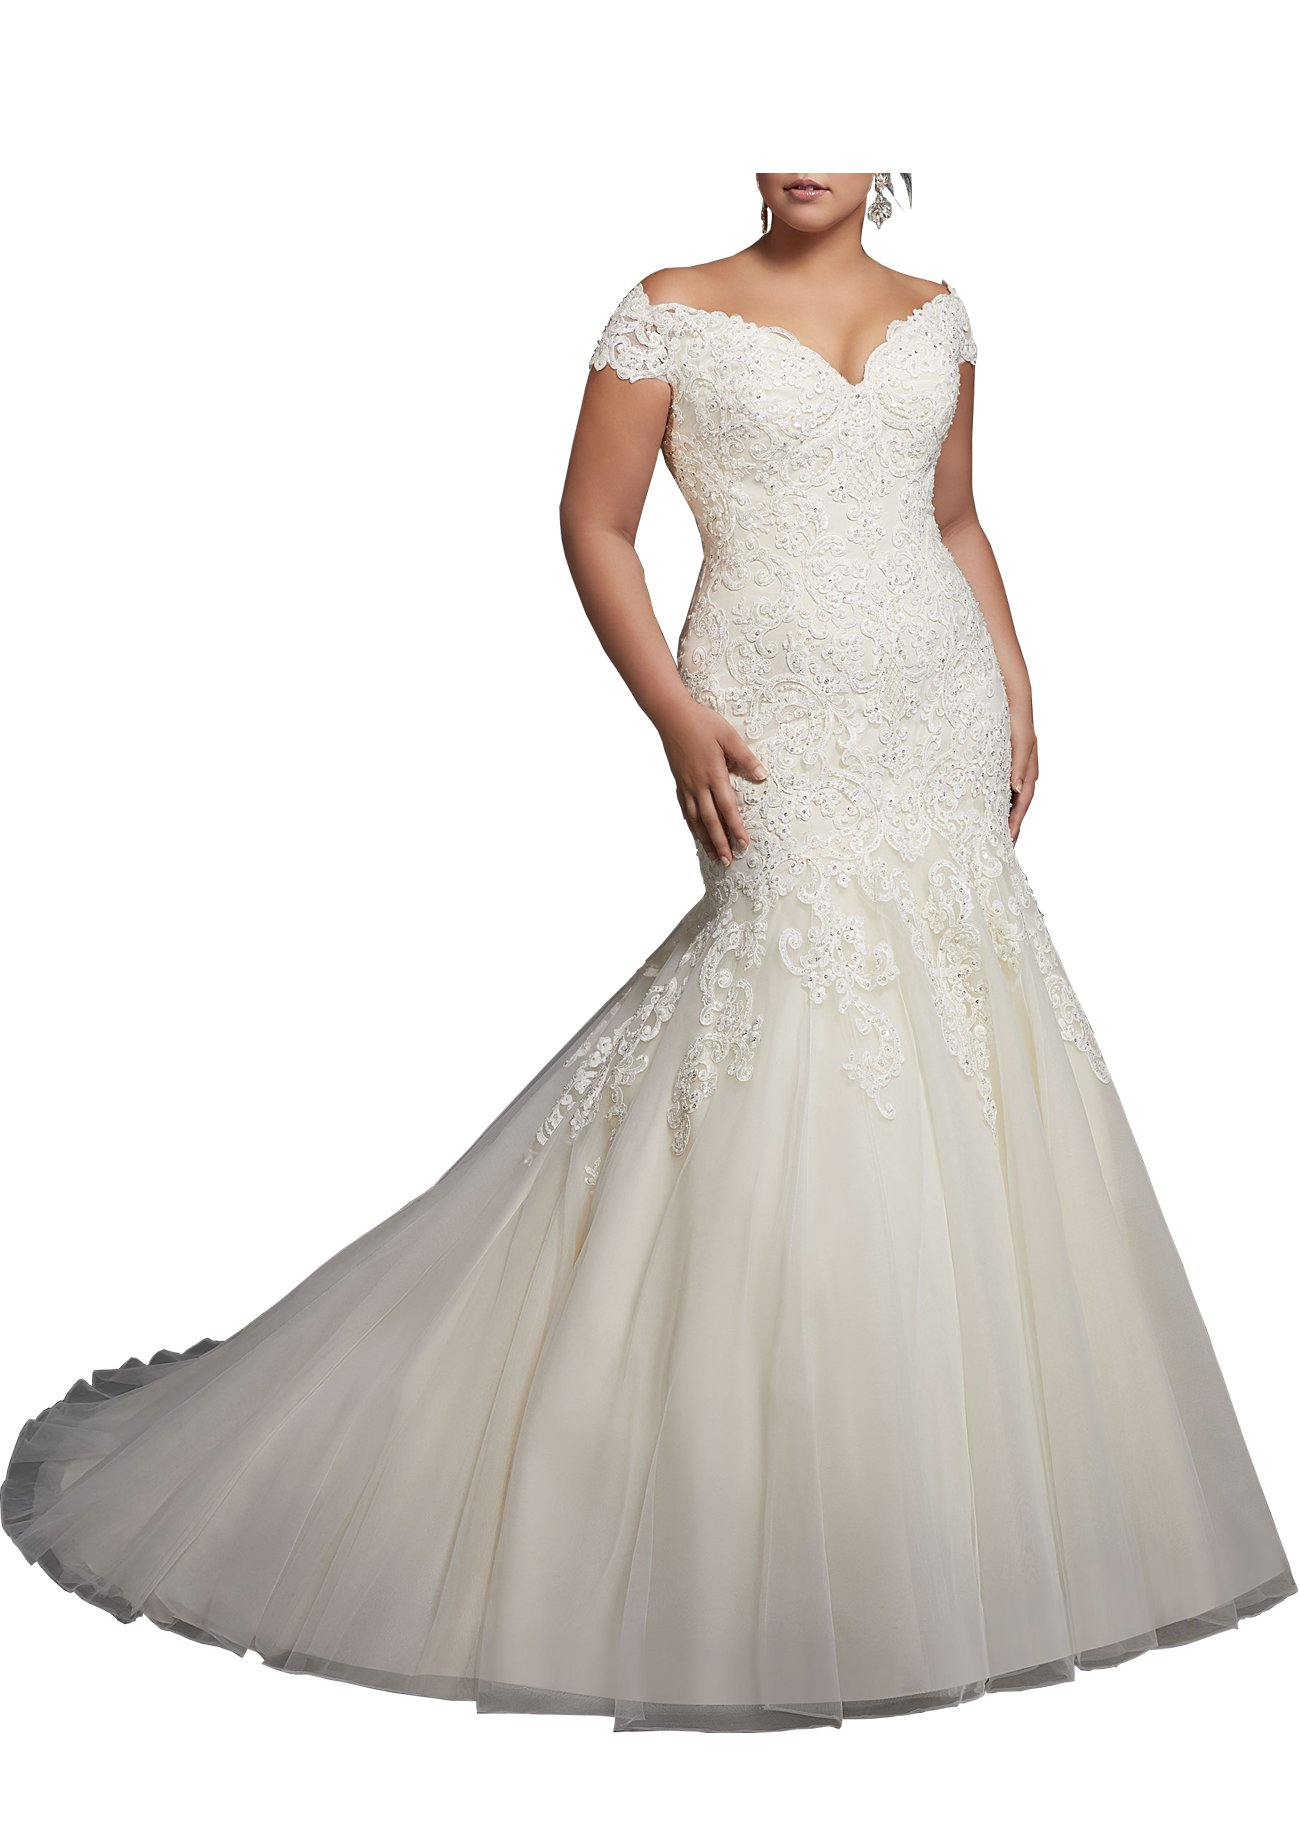 Beauty Bridal V-neck Off Shoulder Mermaid Wedding Dresses For Bride Lace Applique Bridal Gowns (18W,Pure White)